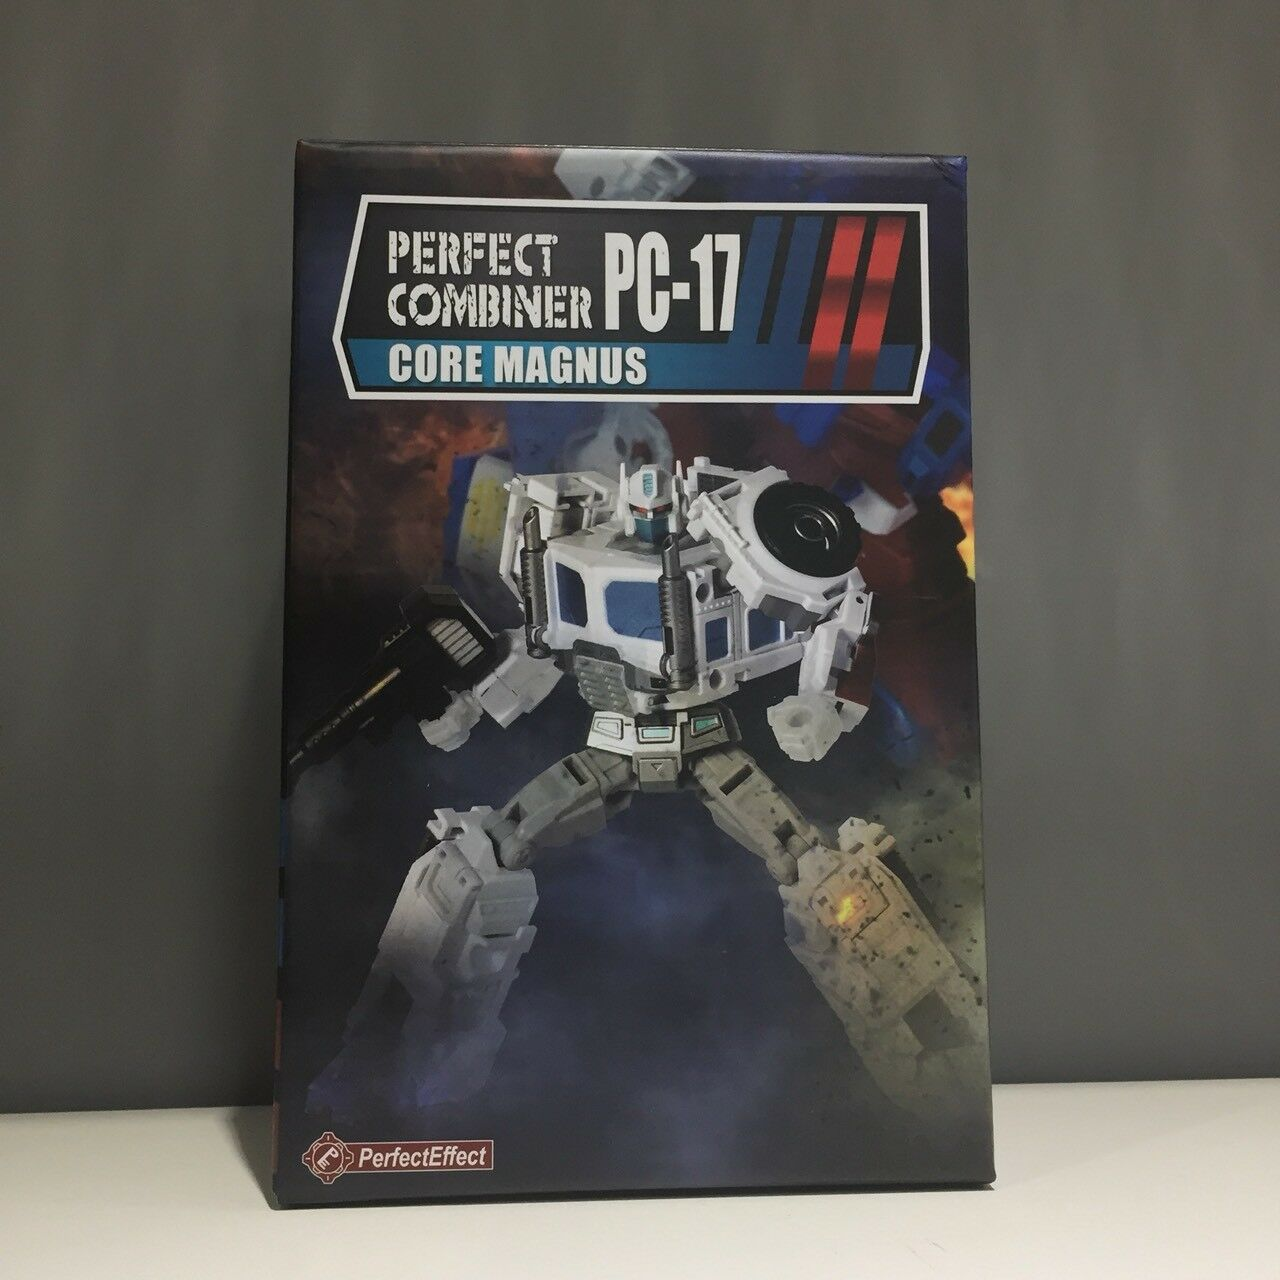 [W.H]MISB PerfectEffect PC-17 Perfect PC17 Combiner Upgrade Set for MAGNUS